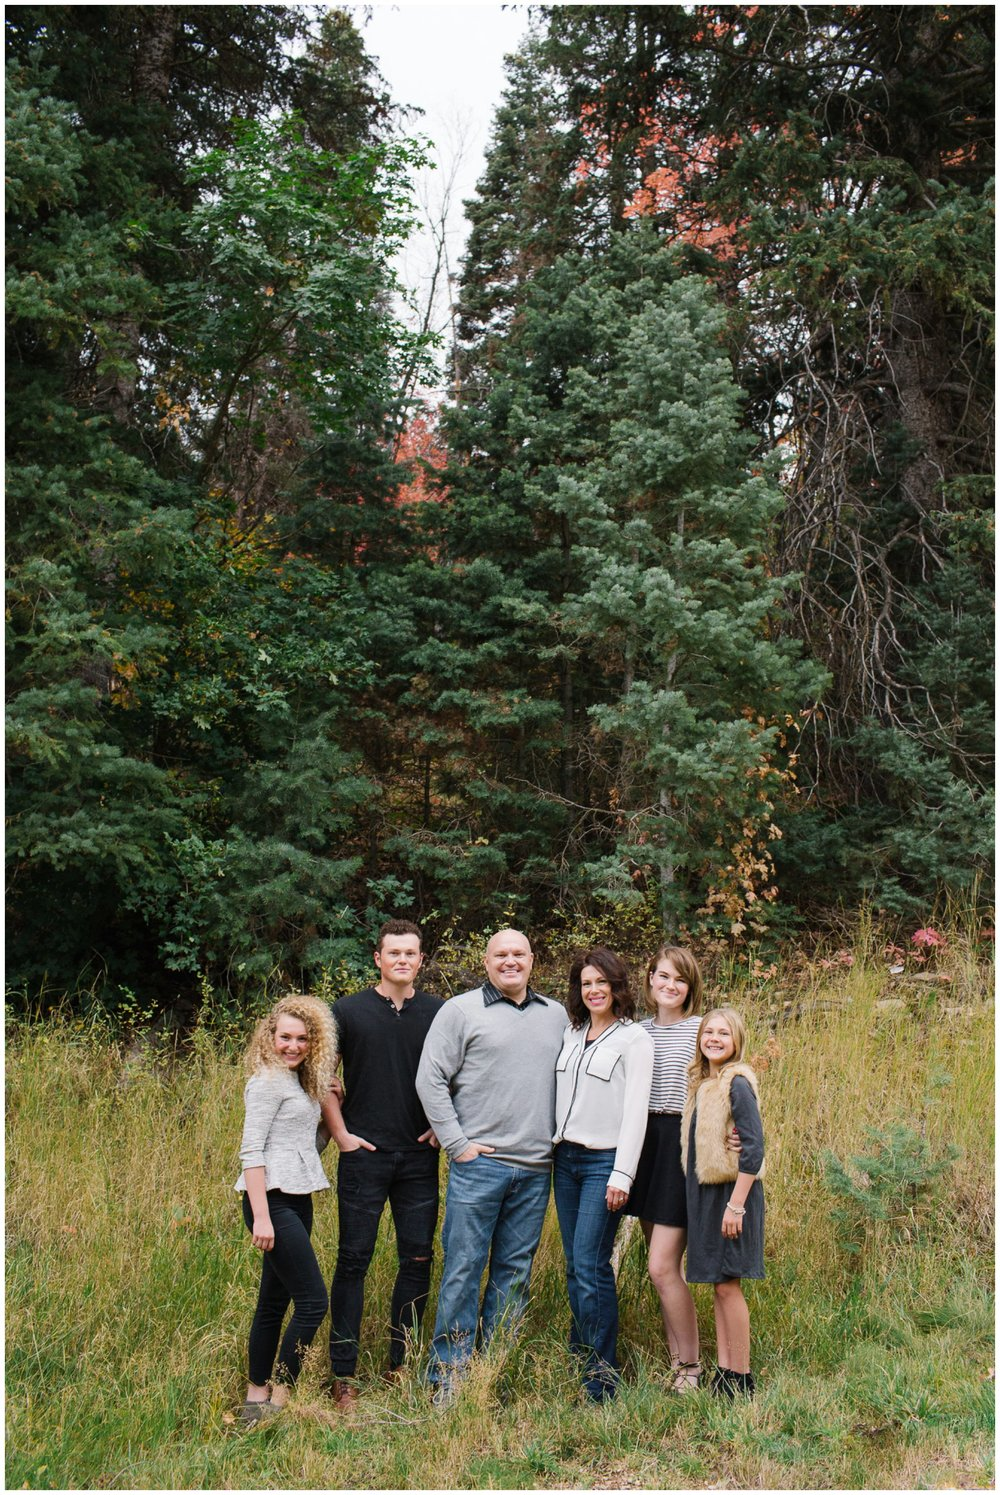 Jamie Tervort Photography | Merrill Family | Utah Family Photography | Sundance Utah | Fall Pictures